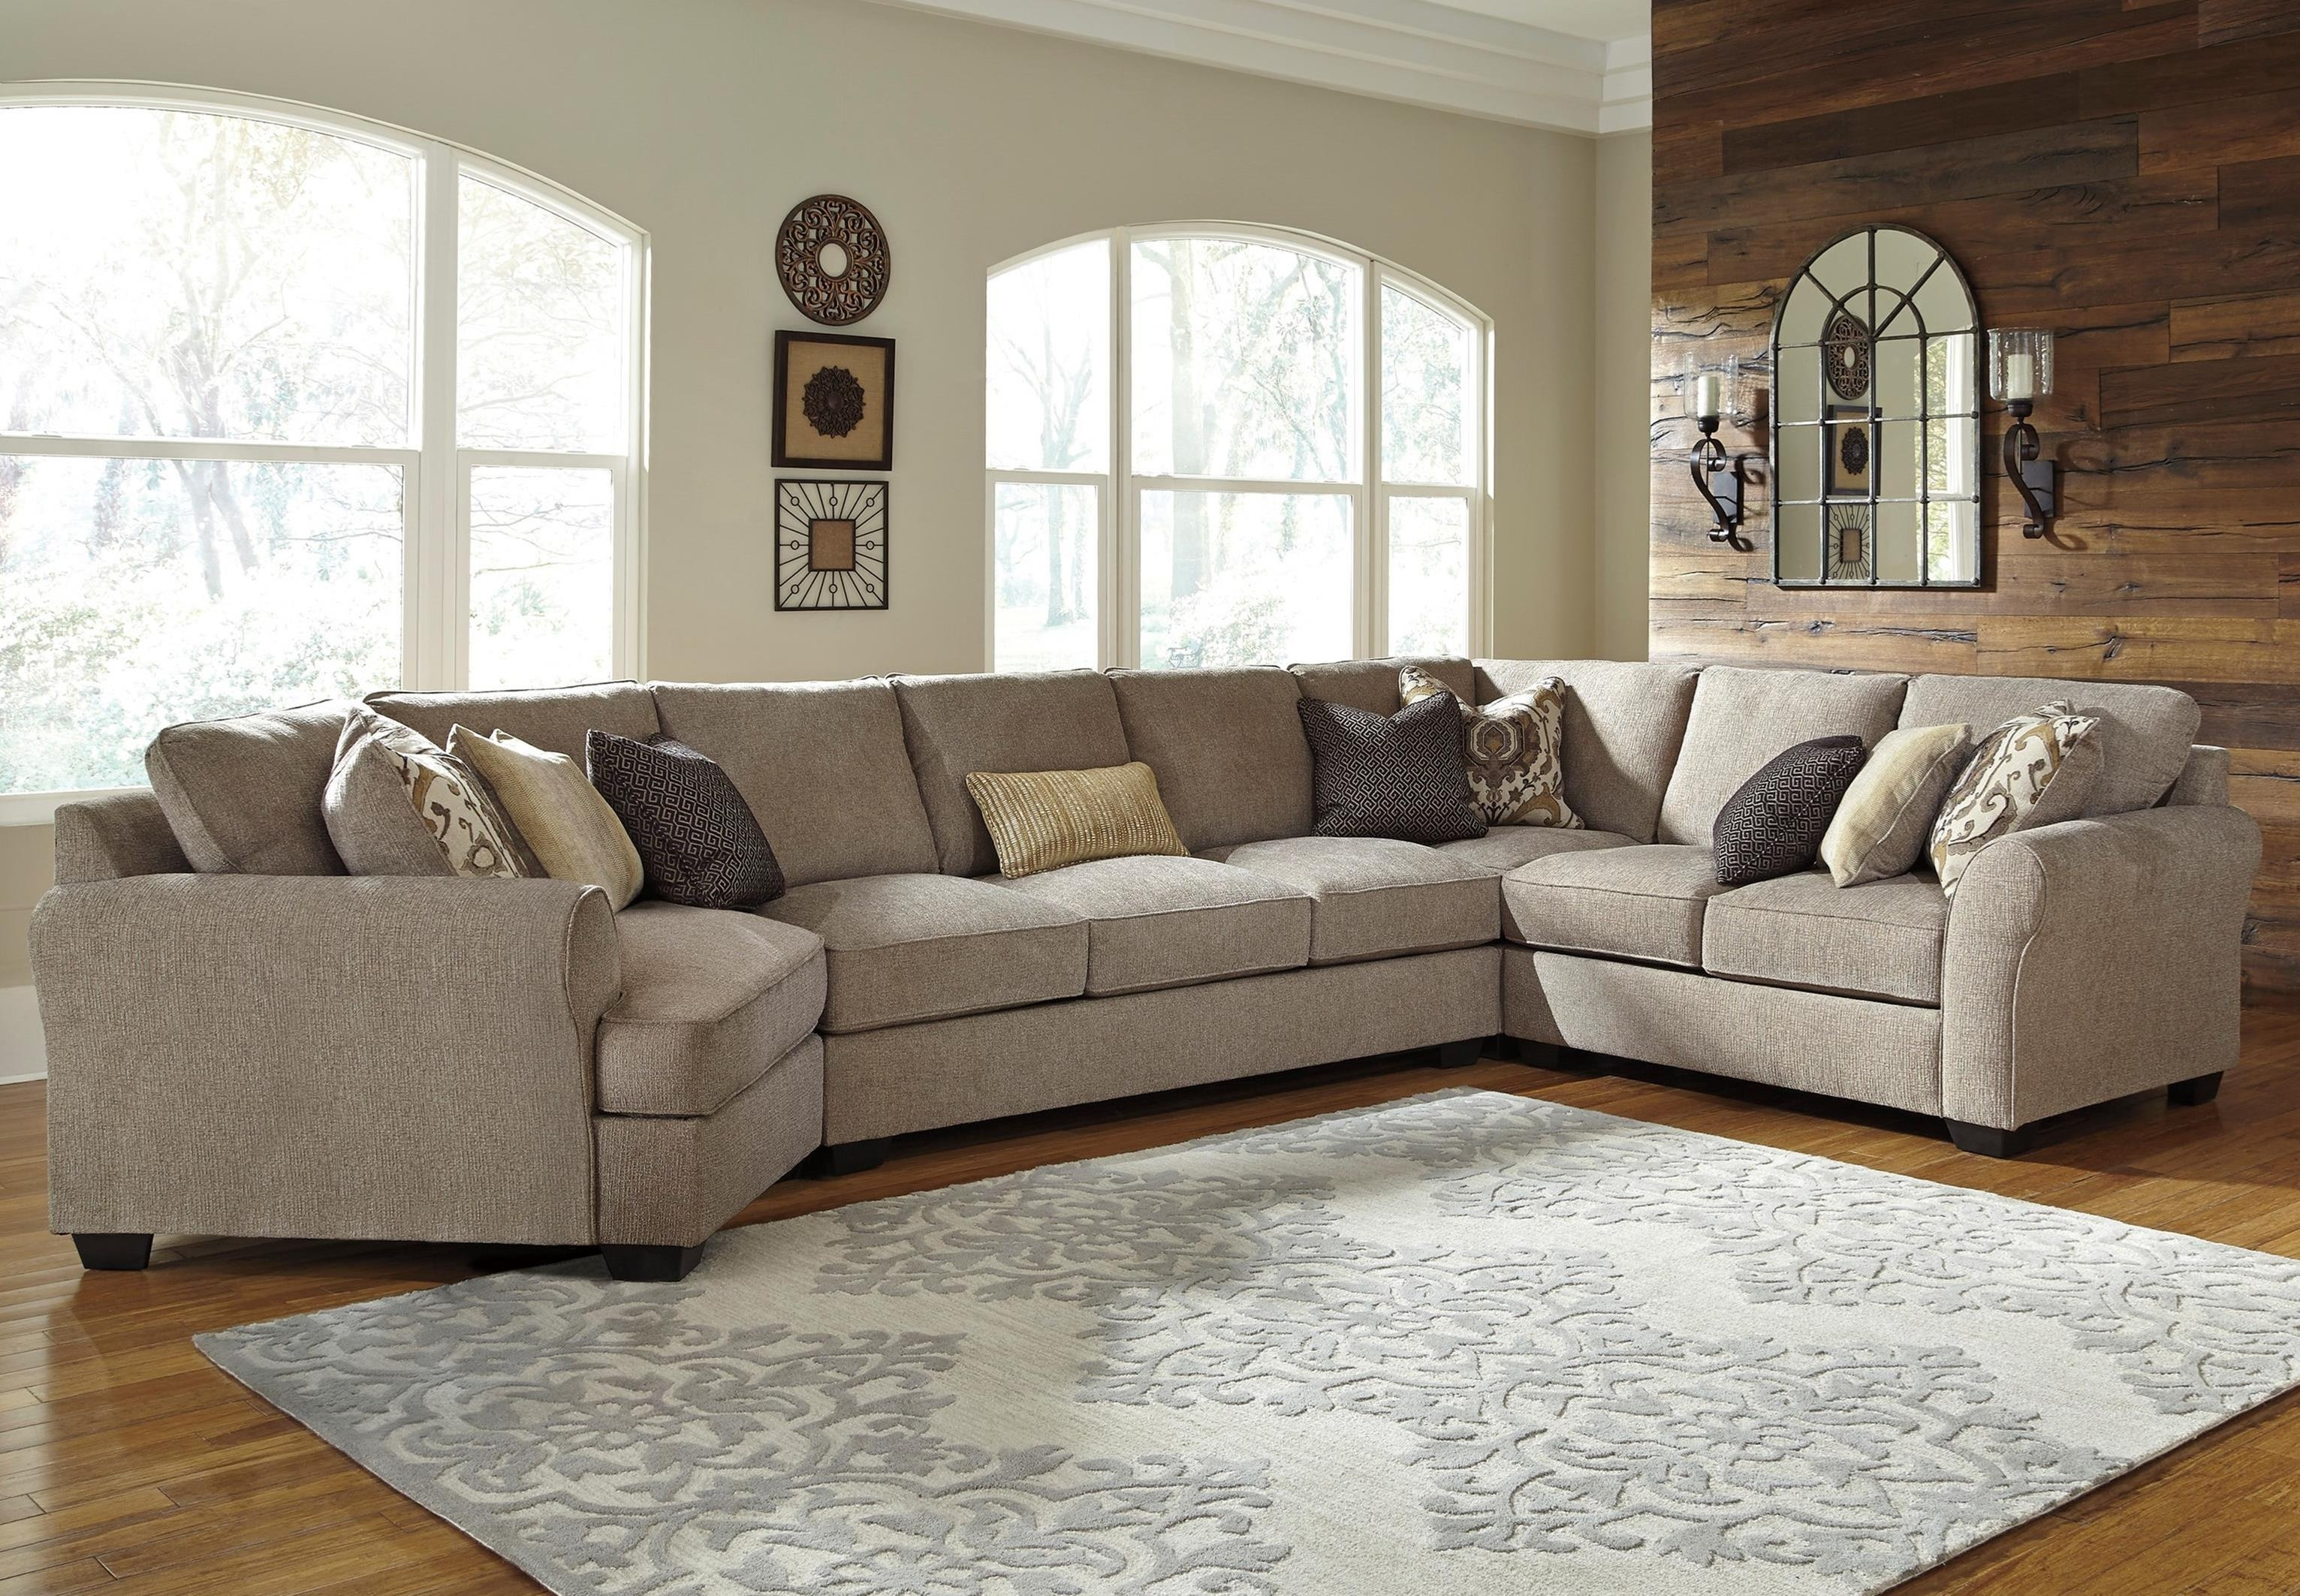 Benchcraft Pantomine 4 Piece Sectional With Left Cuddler & Armless With Cuddler Sectional Sofa (View 5 of 15)